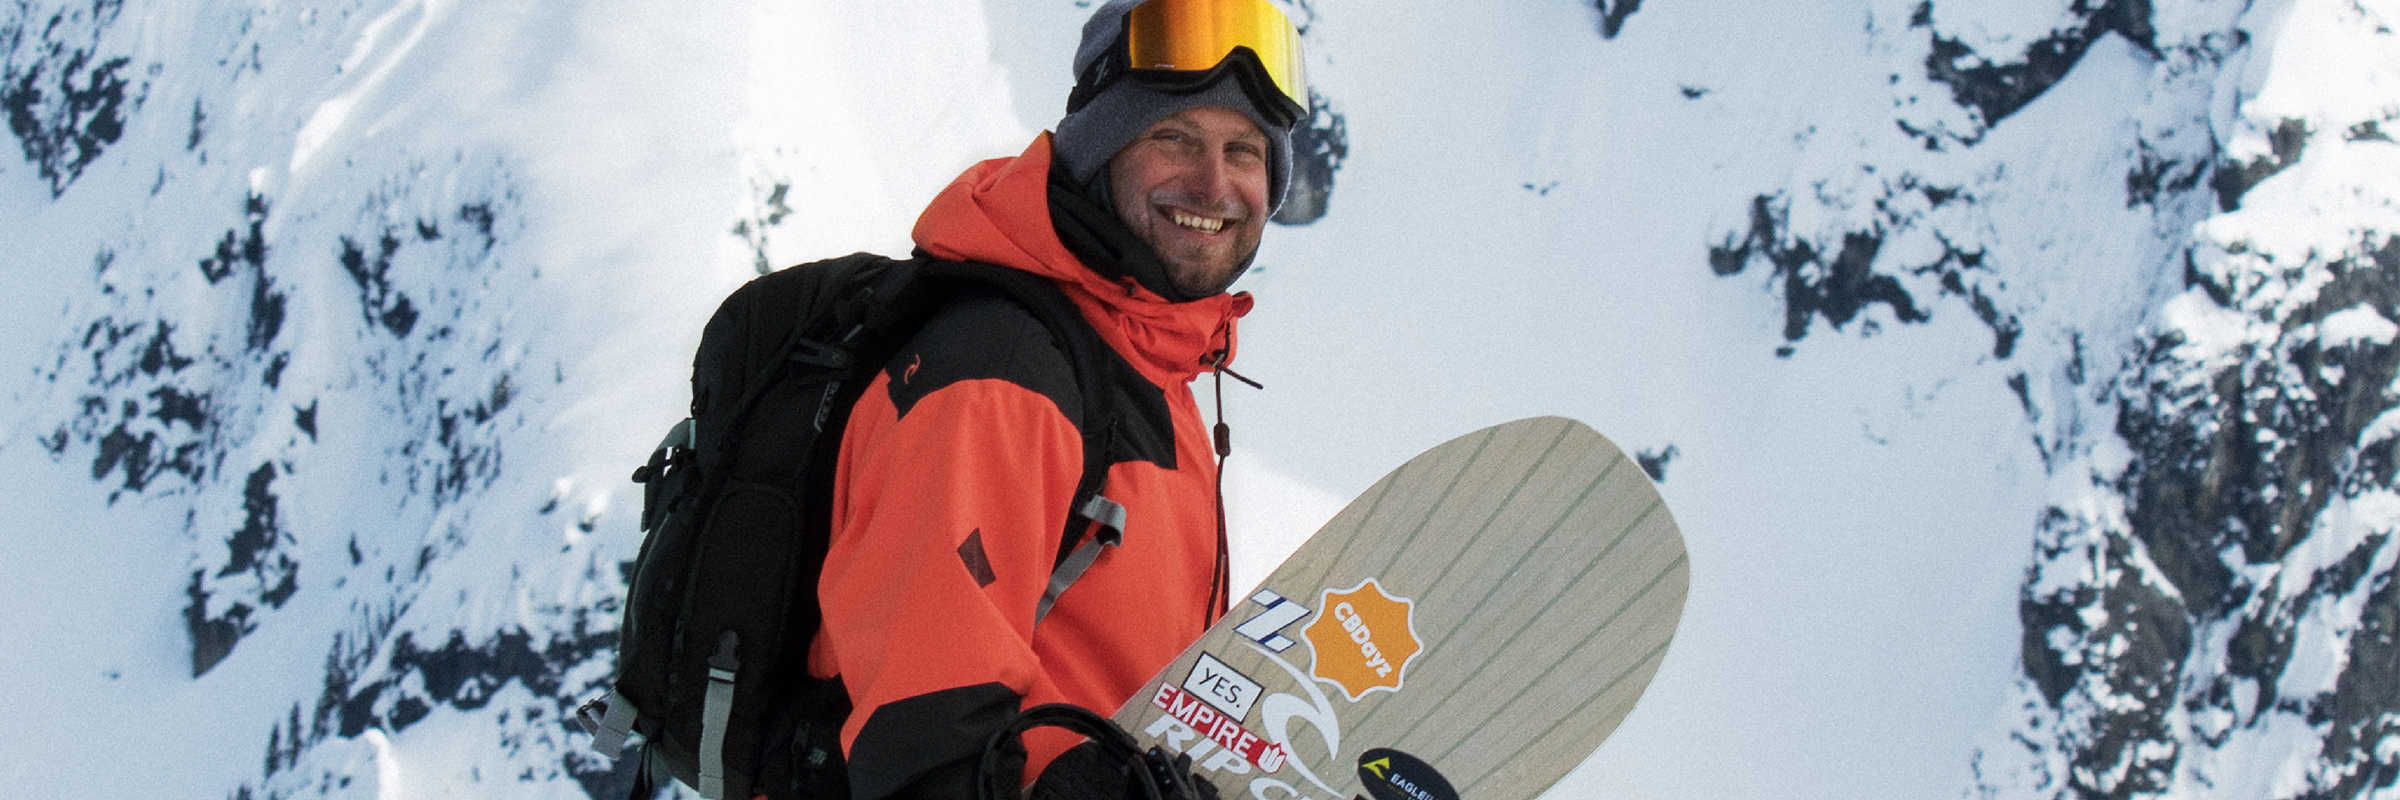 DCP for Rip Curl Snow Gear: The Canadian Snowboarding Legend talks his Career & The Search